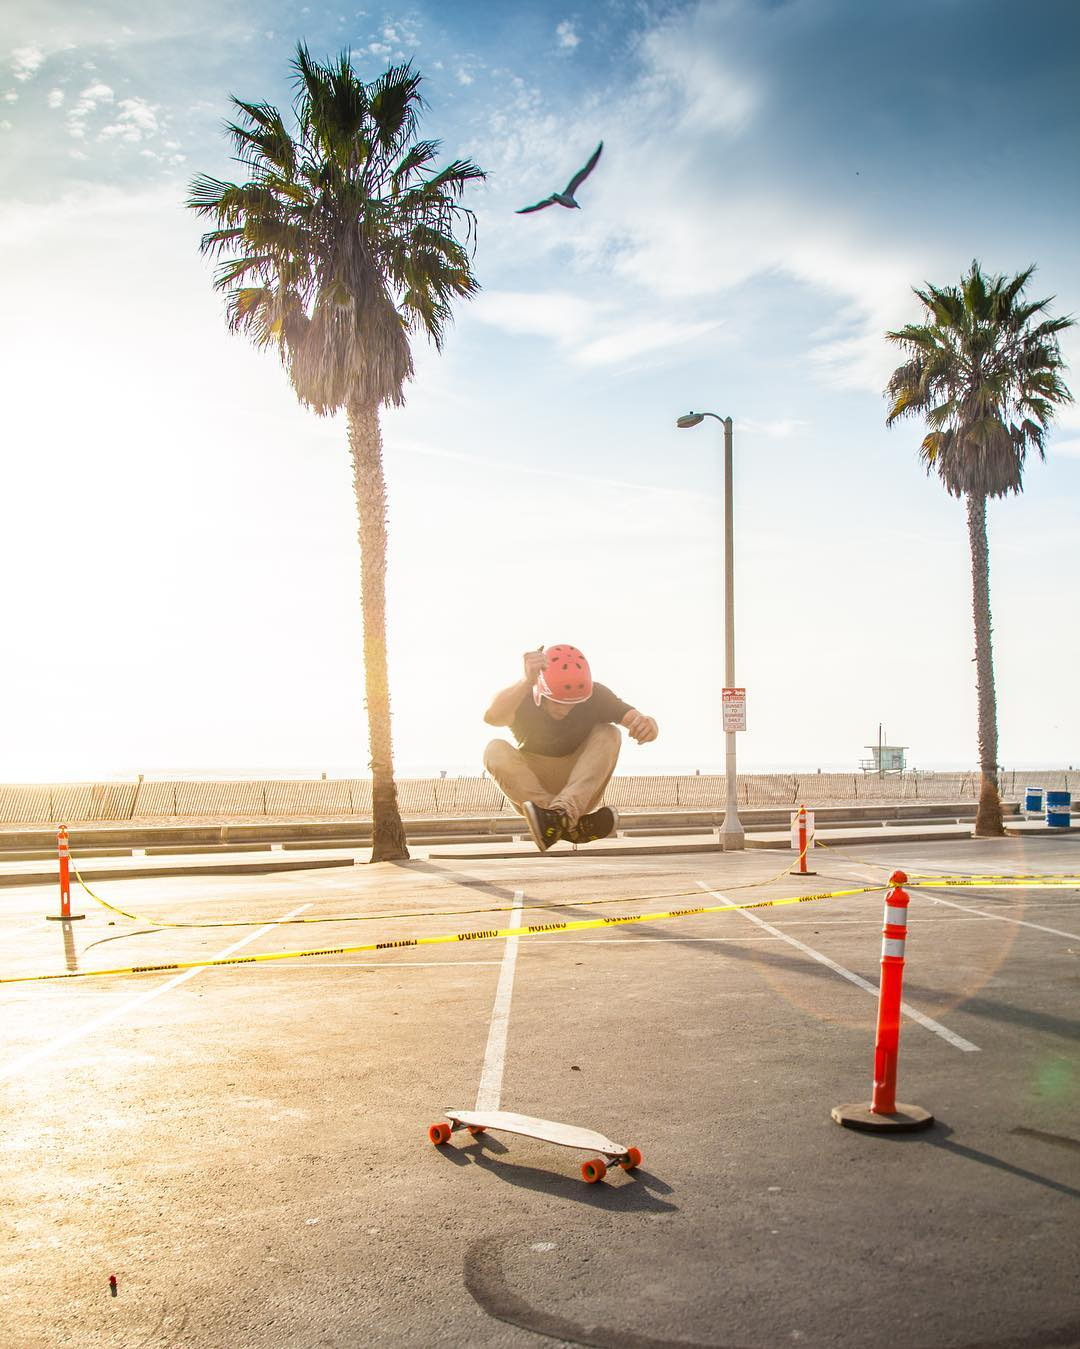 Here's #OrangatangAmbassador @axel_montgomery with a stylish hippie jump in a beautiful Santa Monica sunset.